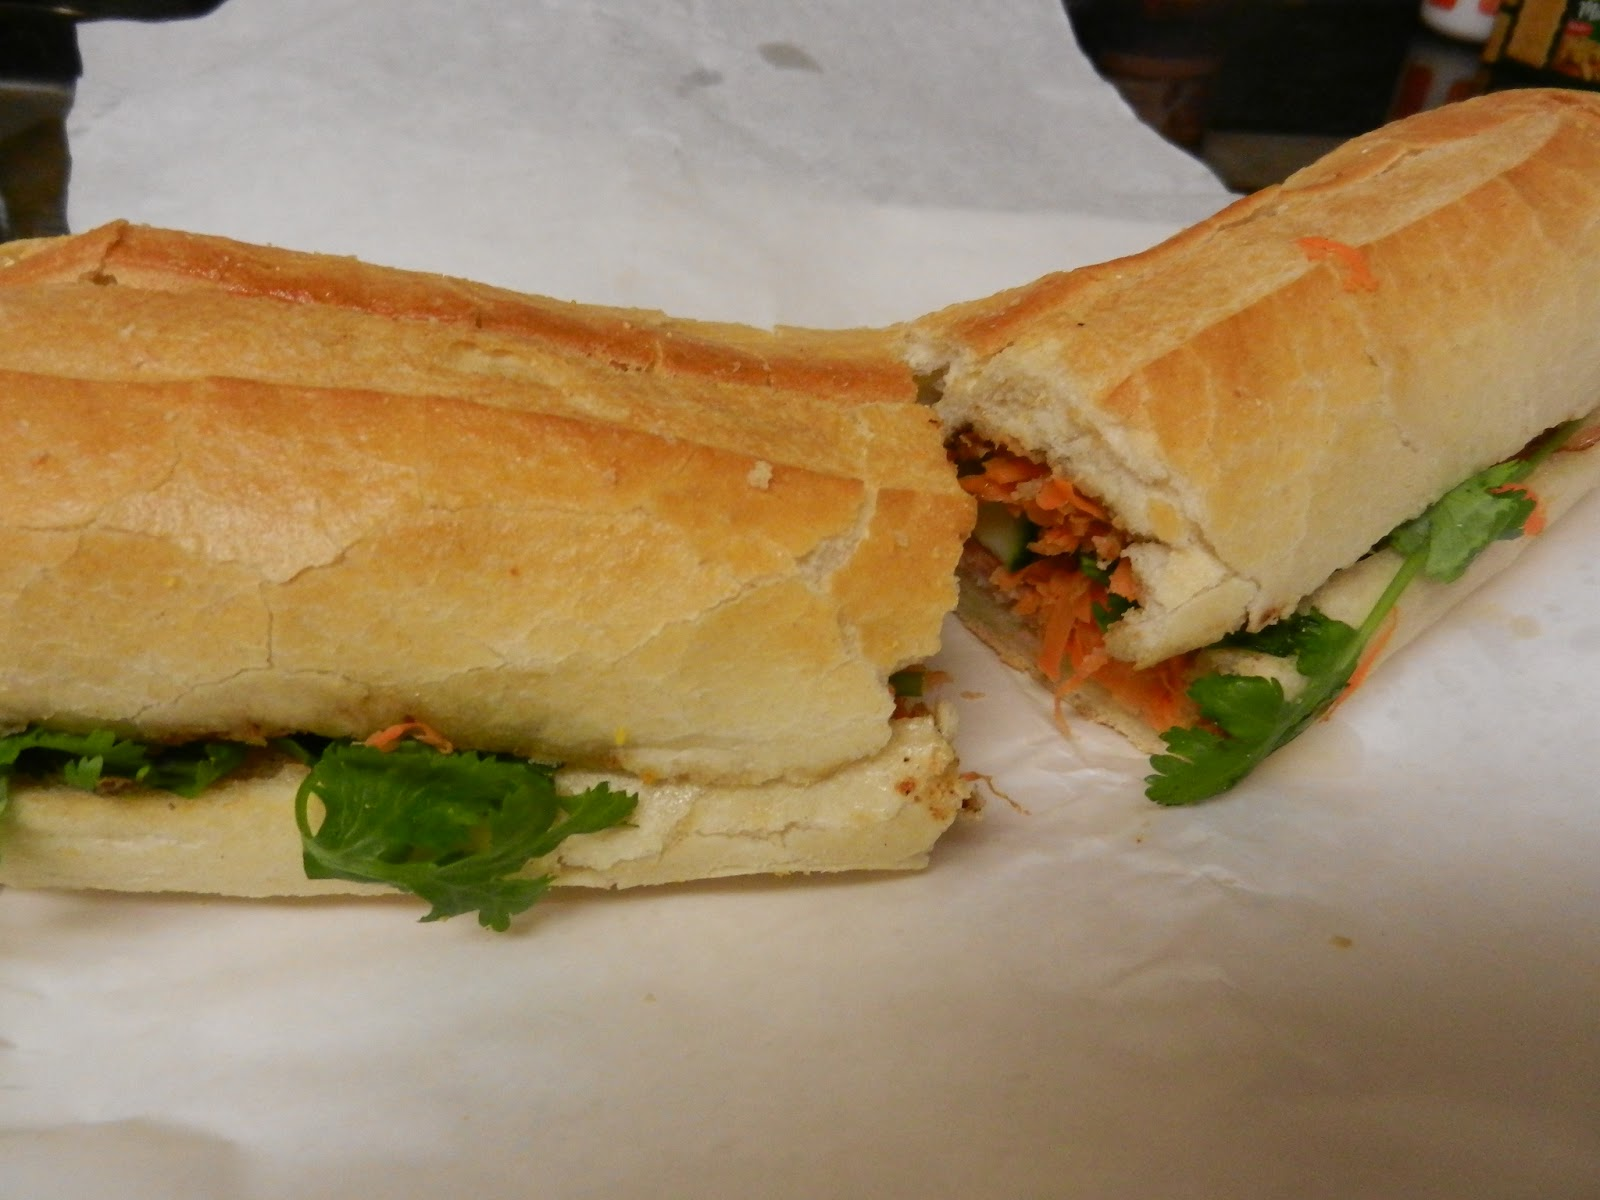 Belly of the Pig: QT Vietnamese Sandwich Review